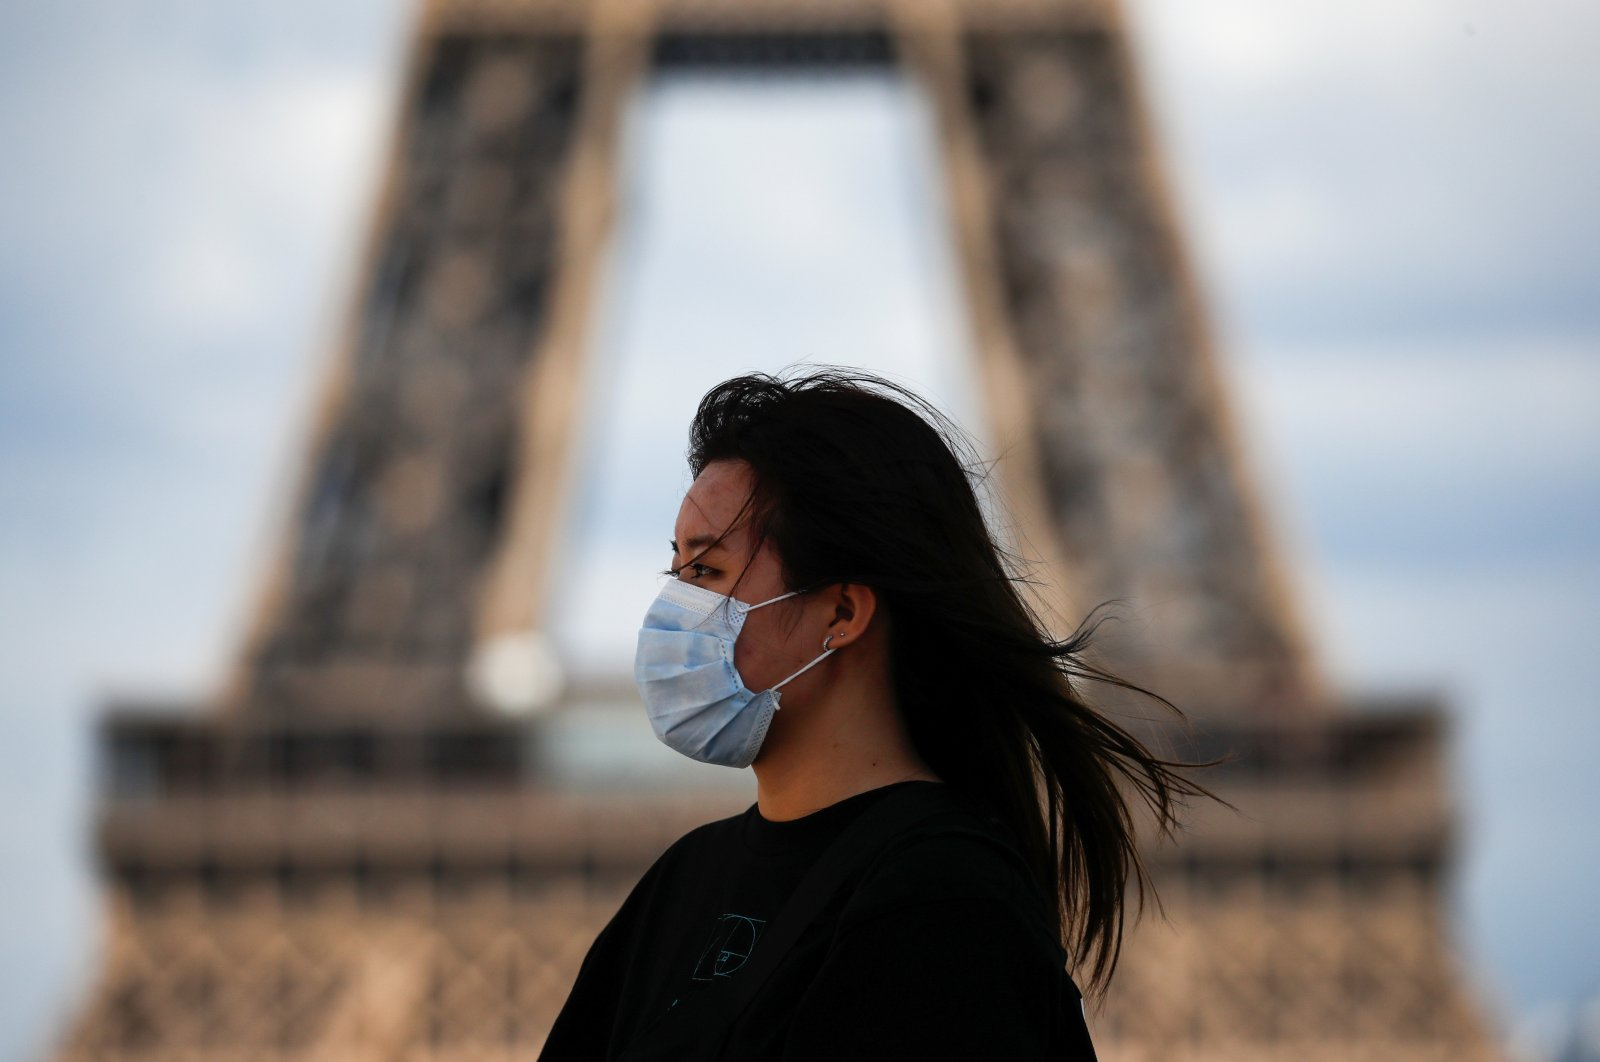 A woman wearing a protective face mask walks at the Trocadero square near the Eiffel Tower in Paris, Aug. 3, 2020. (Reuters Photo)